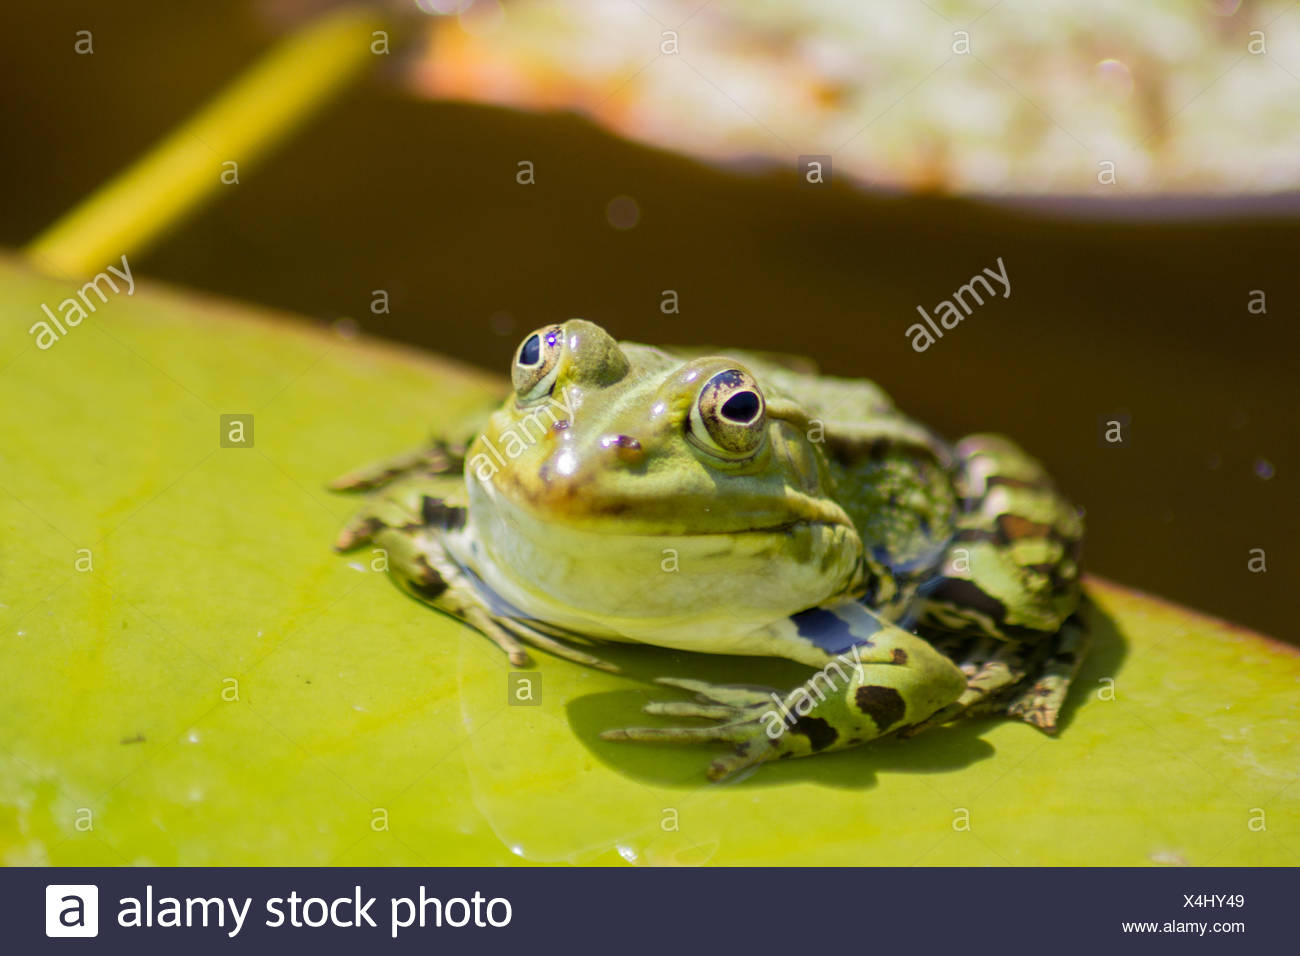 A frog on a water lily - Stock Image